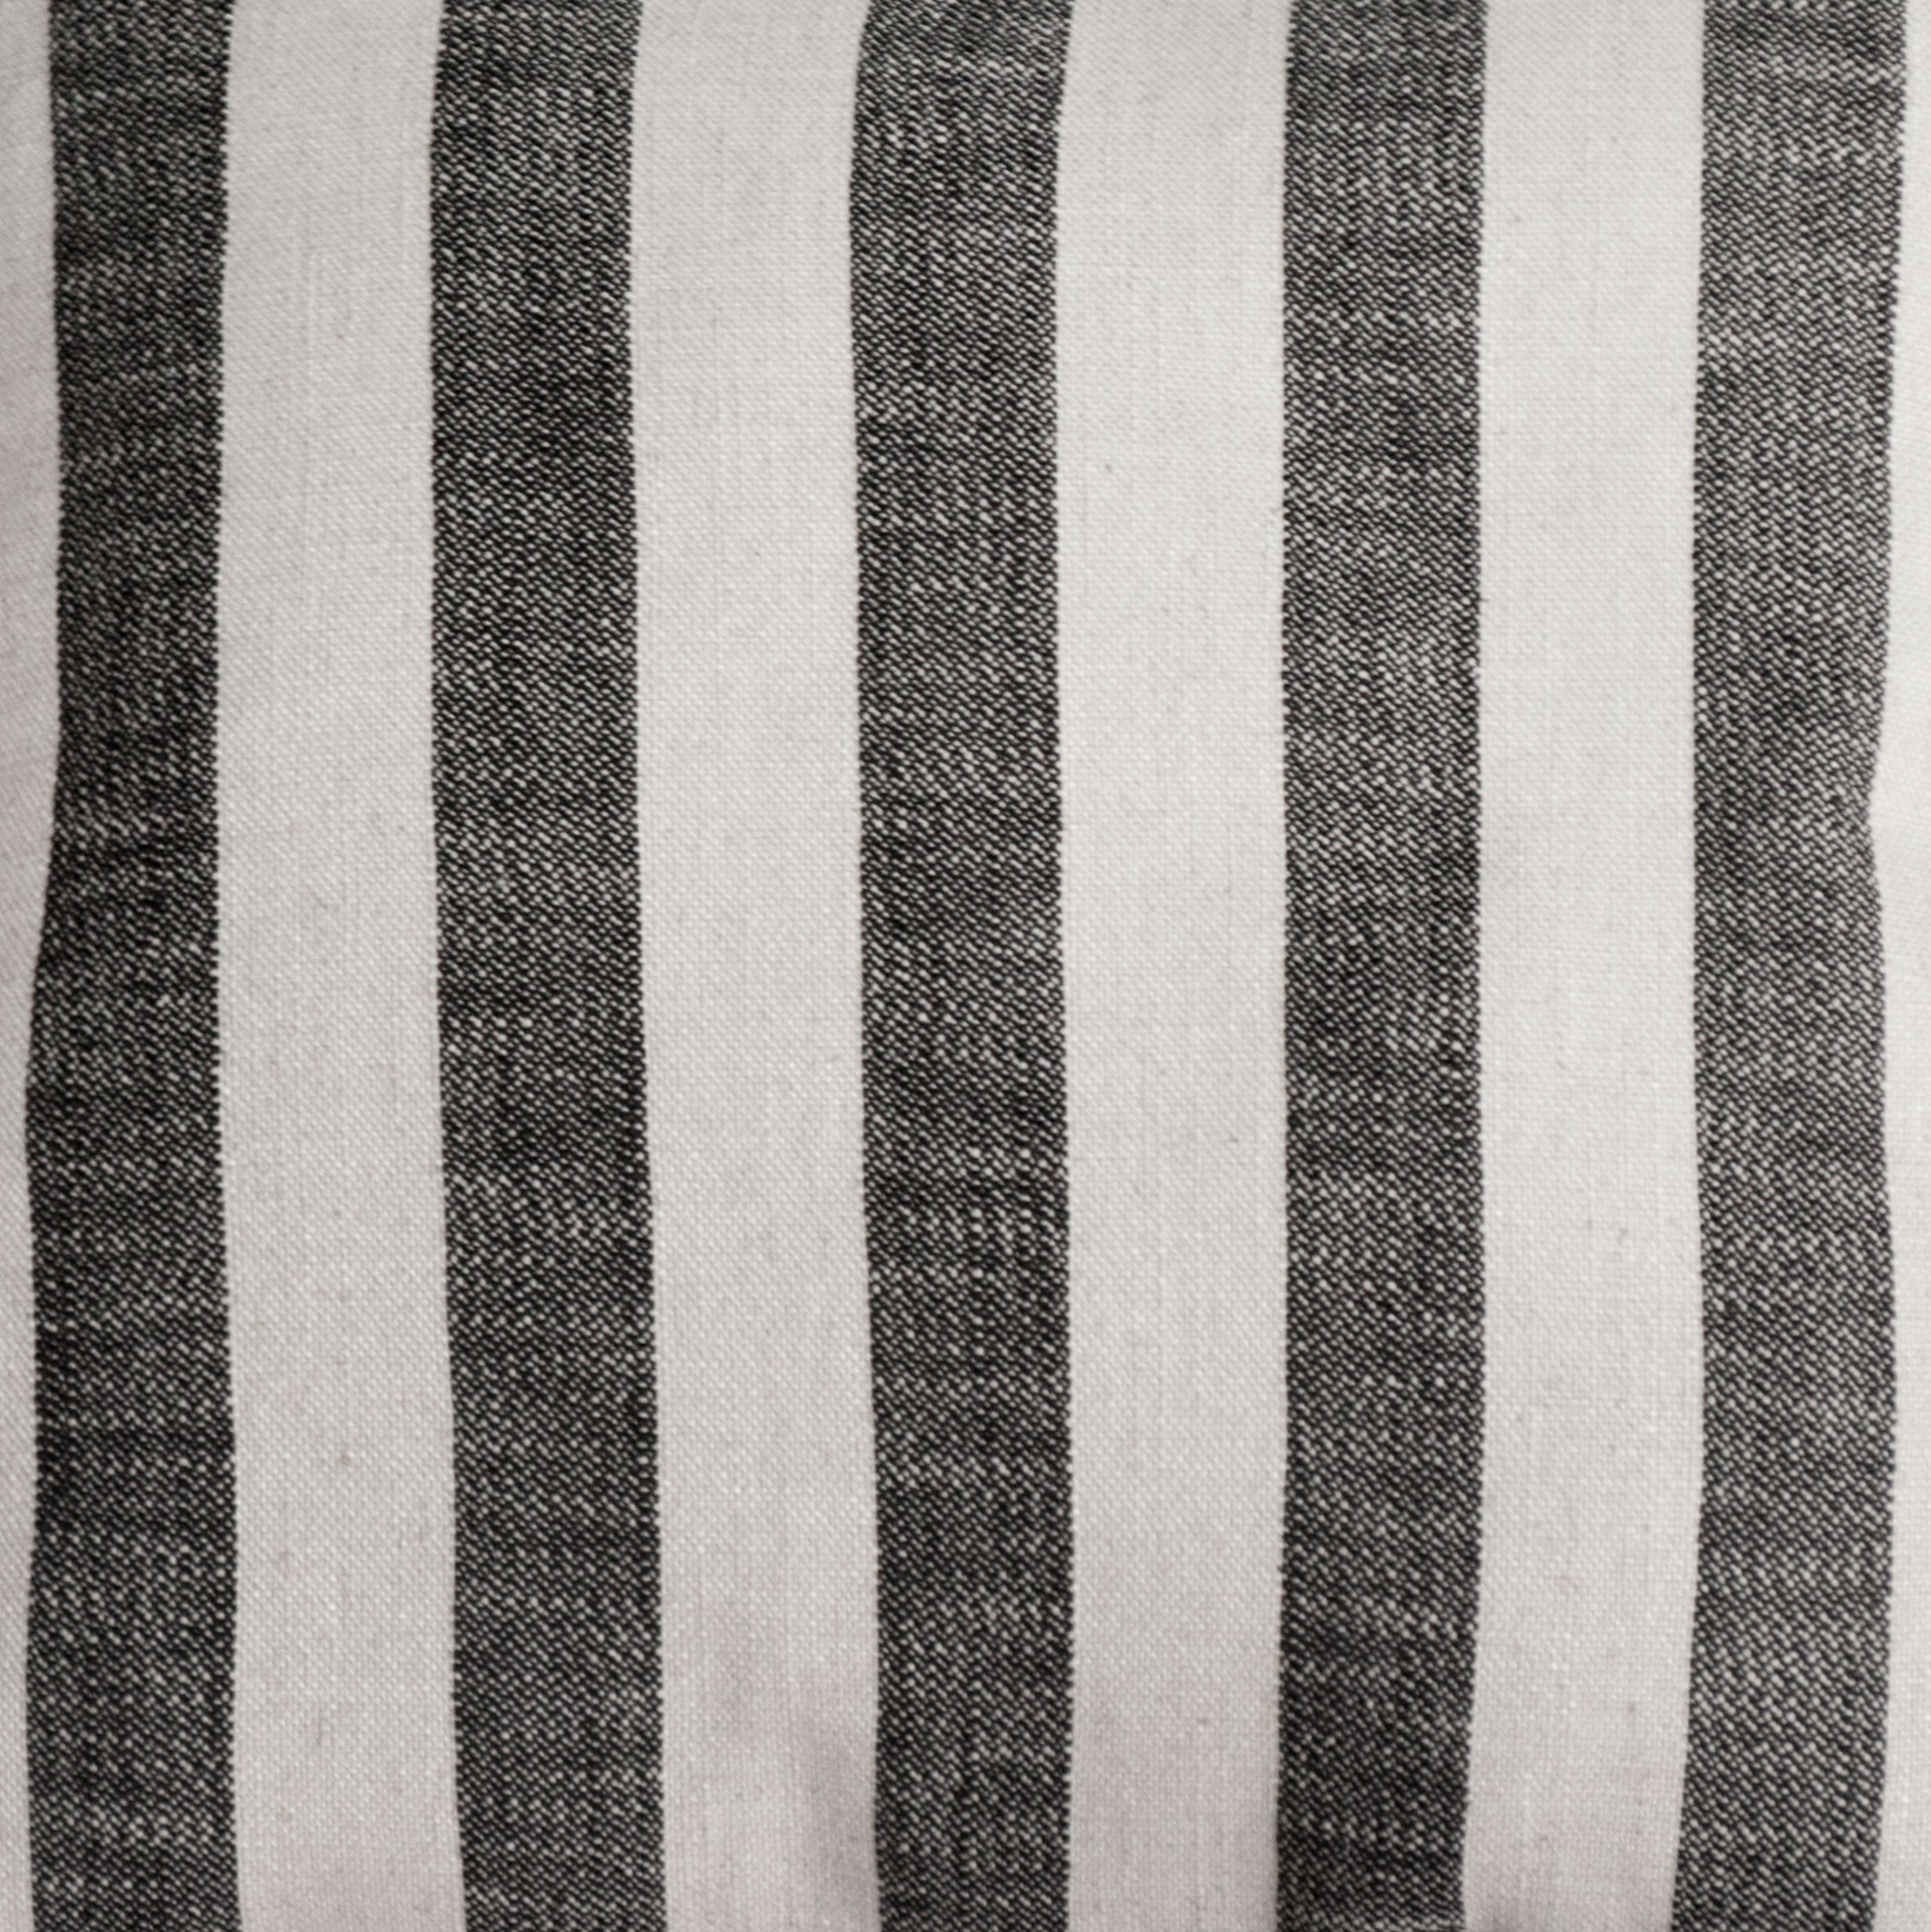 Furniture linen fabric swatch – Stripe